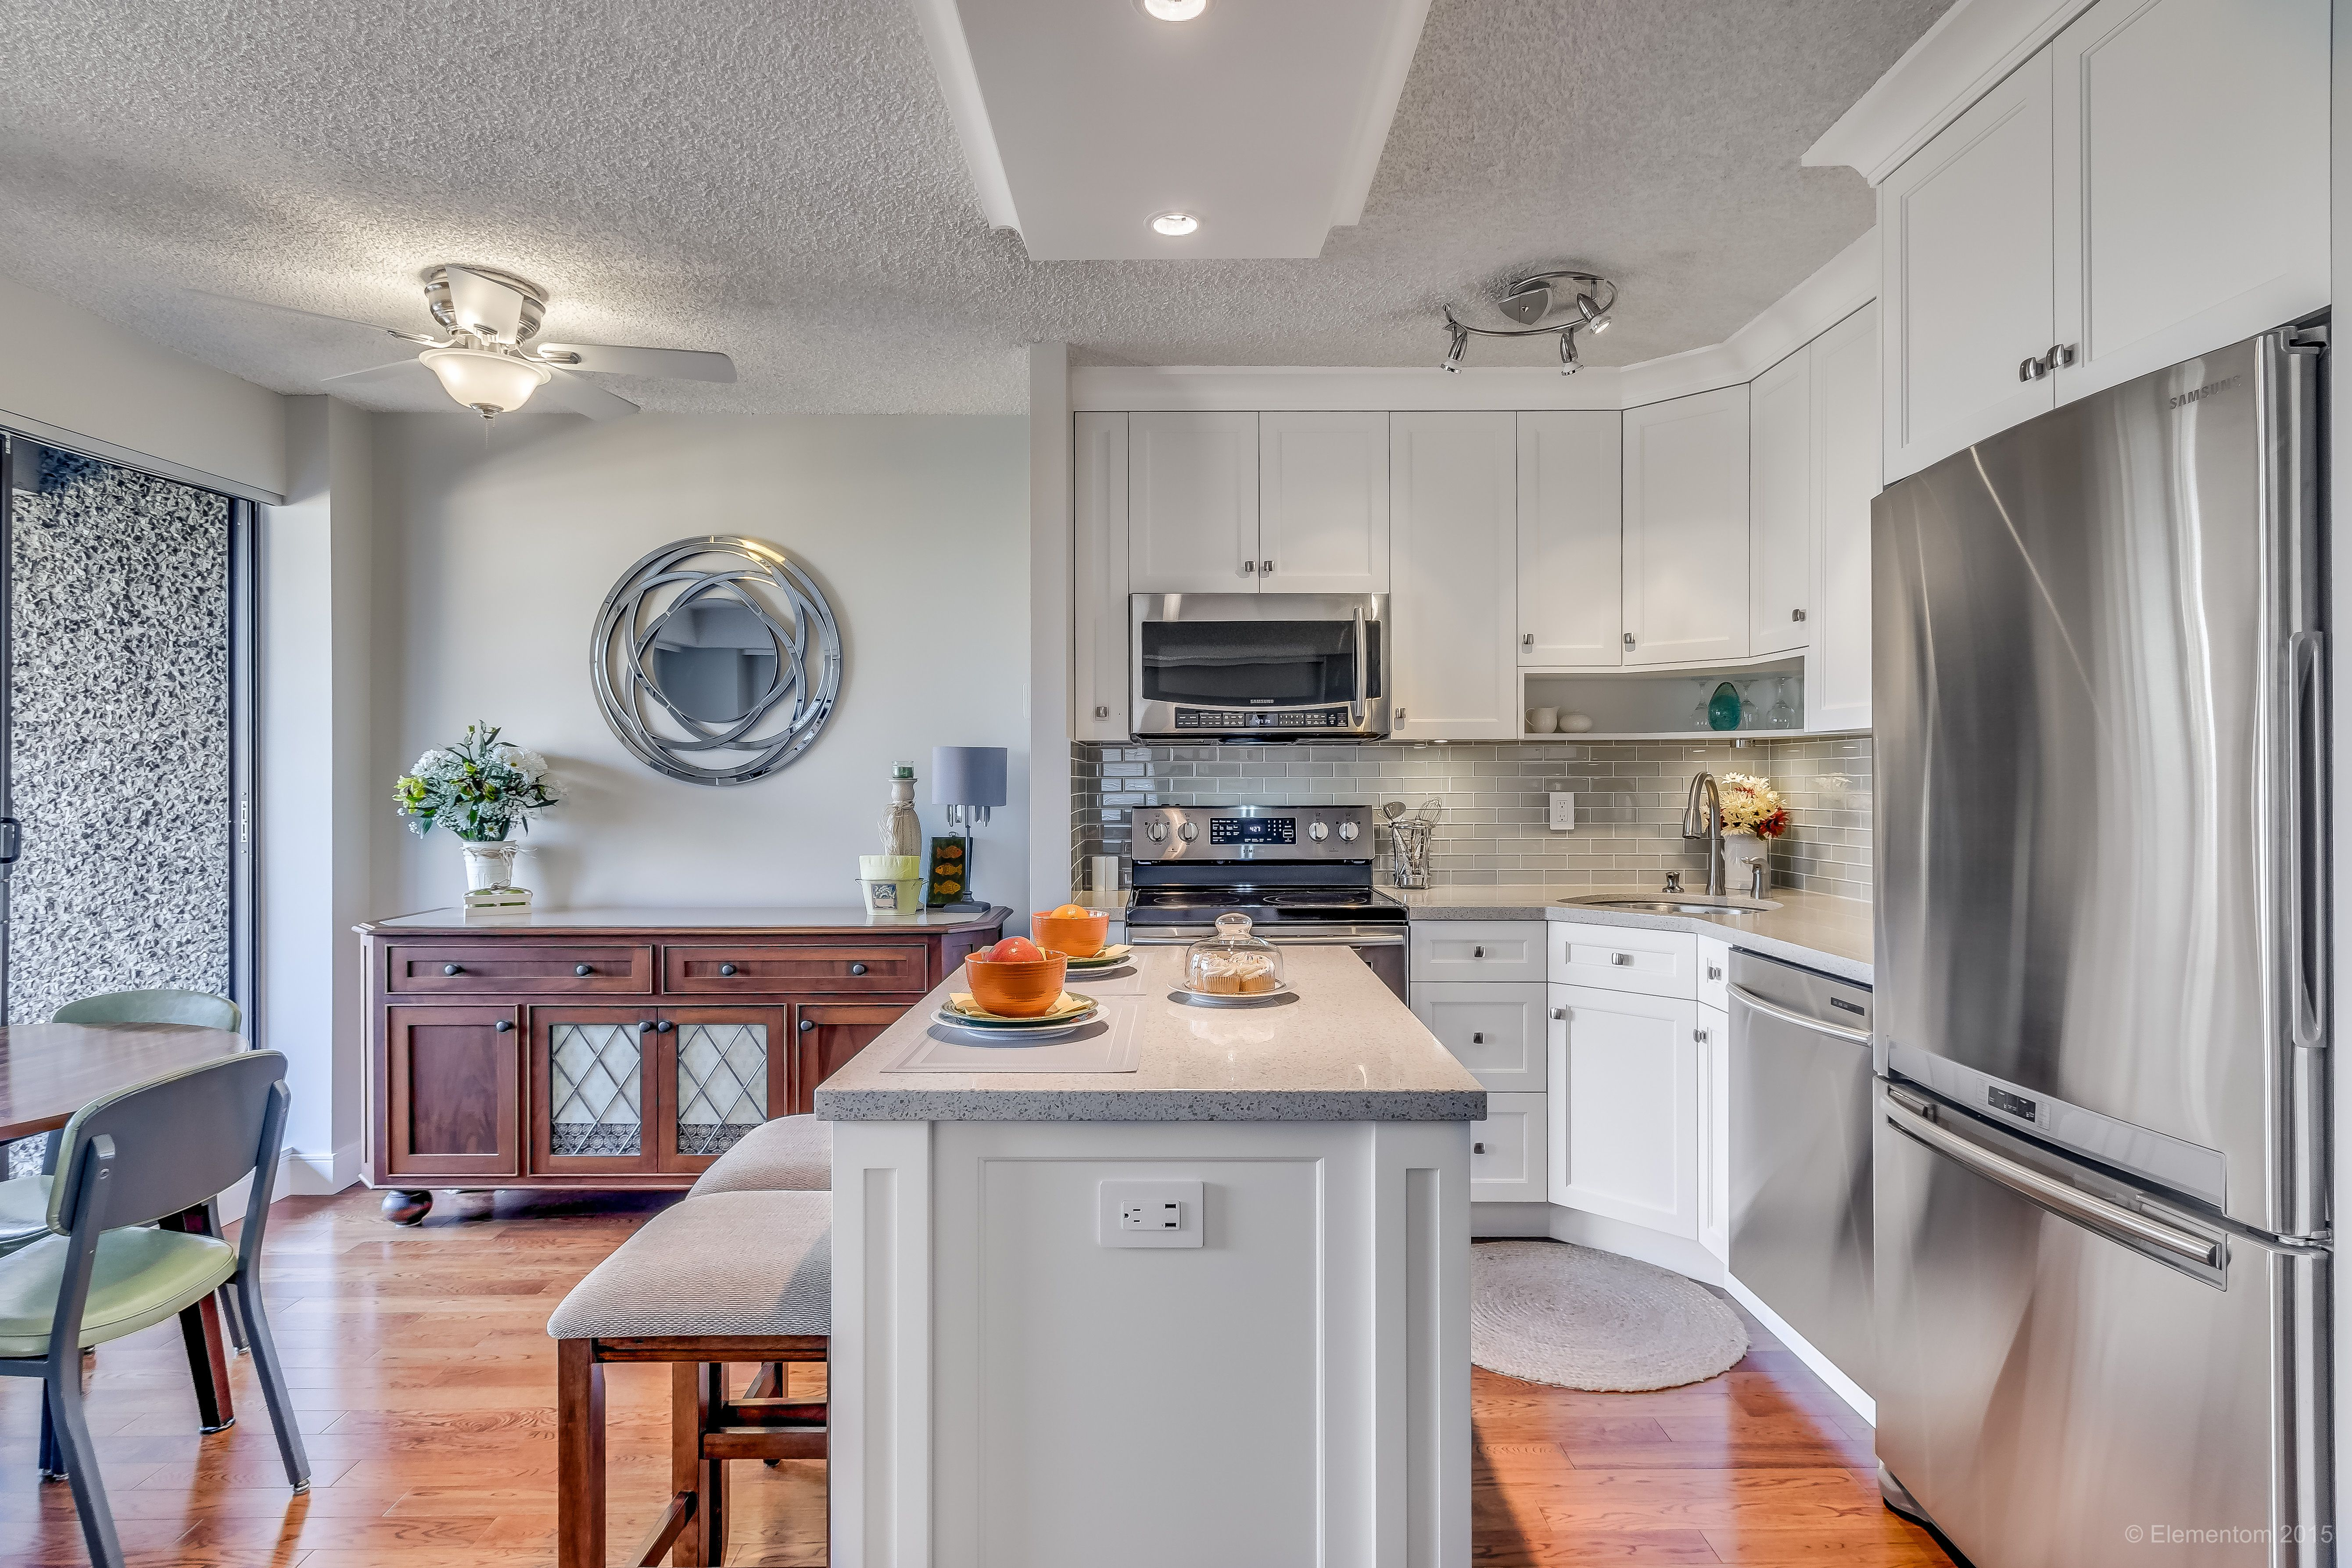 696 Sq Ft 1 Bedroom And Den Corner Condo Westminster Apartments Open Concept Kitchen New Westminster